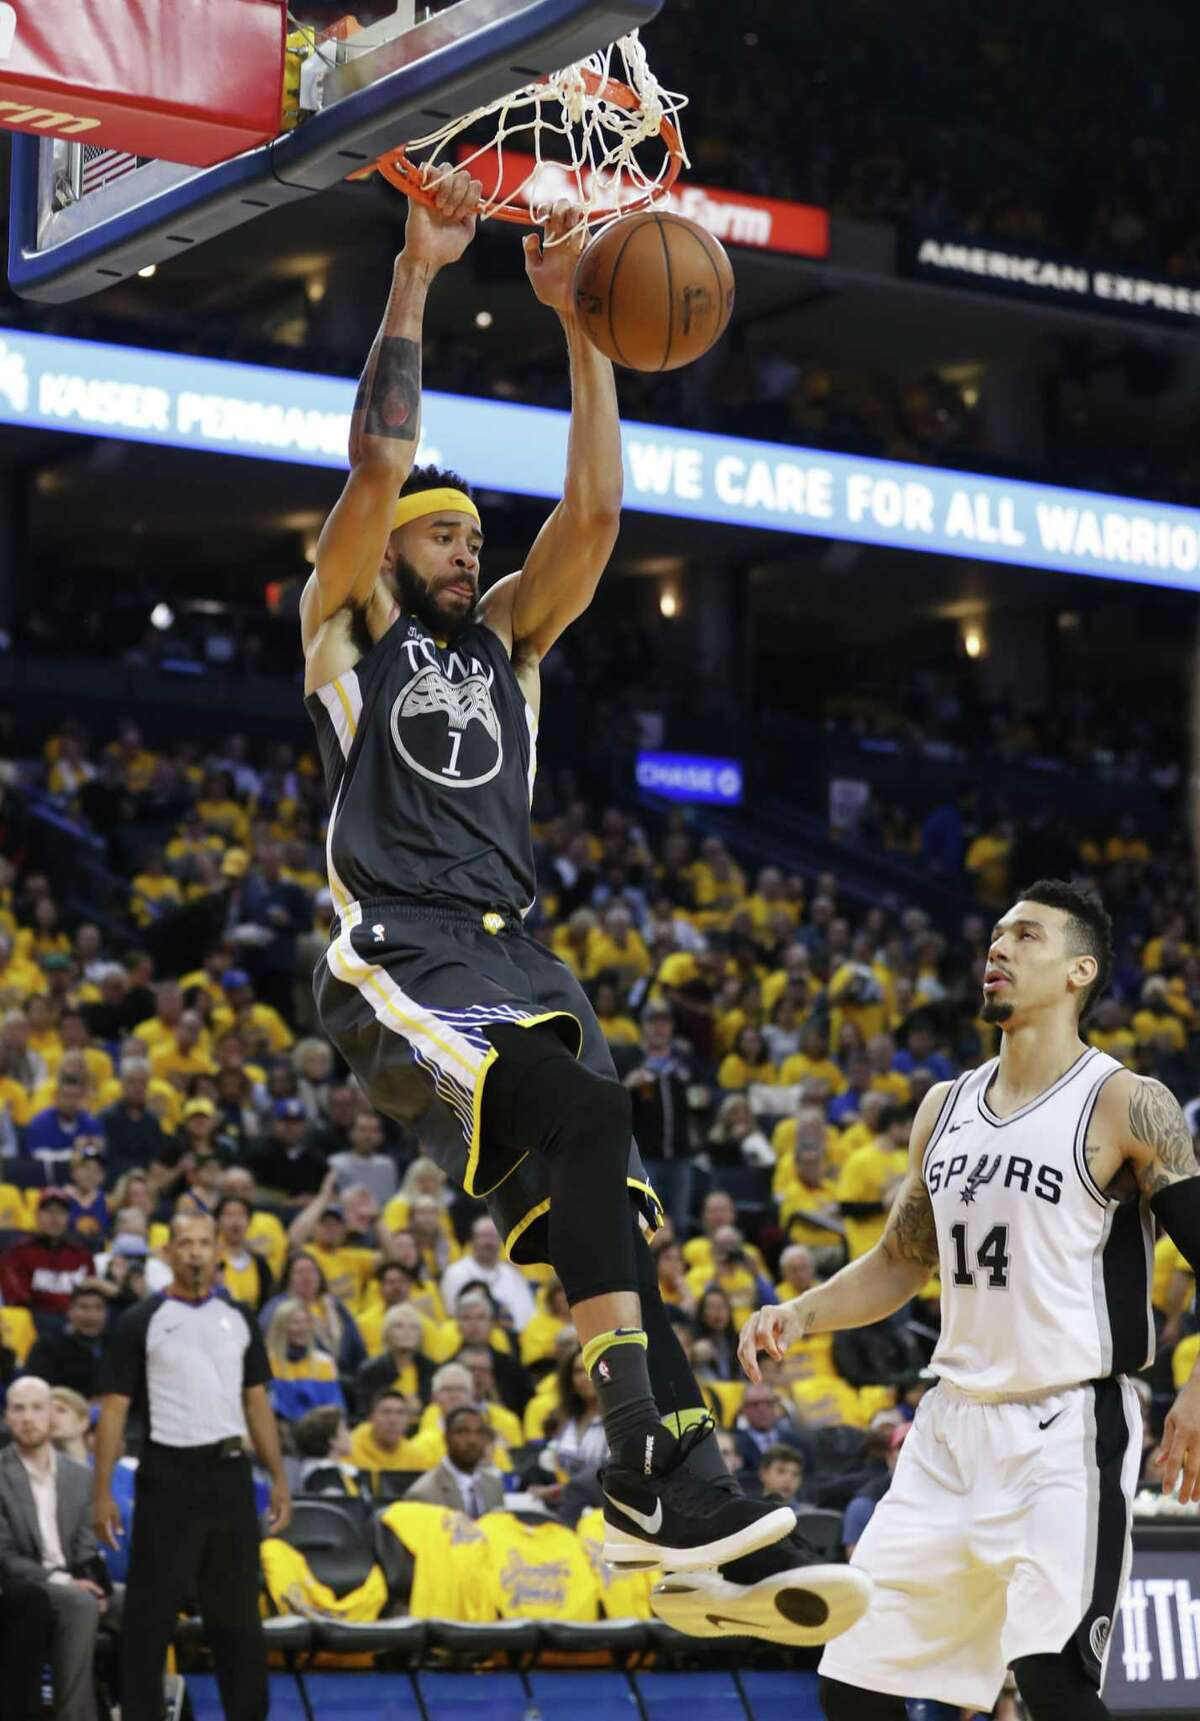 Golden State Warriors' JaVale McGee dunks over San Antonio Spurs' Danny Green in the third quarter during game 2 of round 1 of the Western Conference Finals at Oracle Arena on Monday, April 16, 2018 in Oakland, Calif.